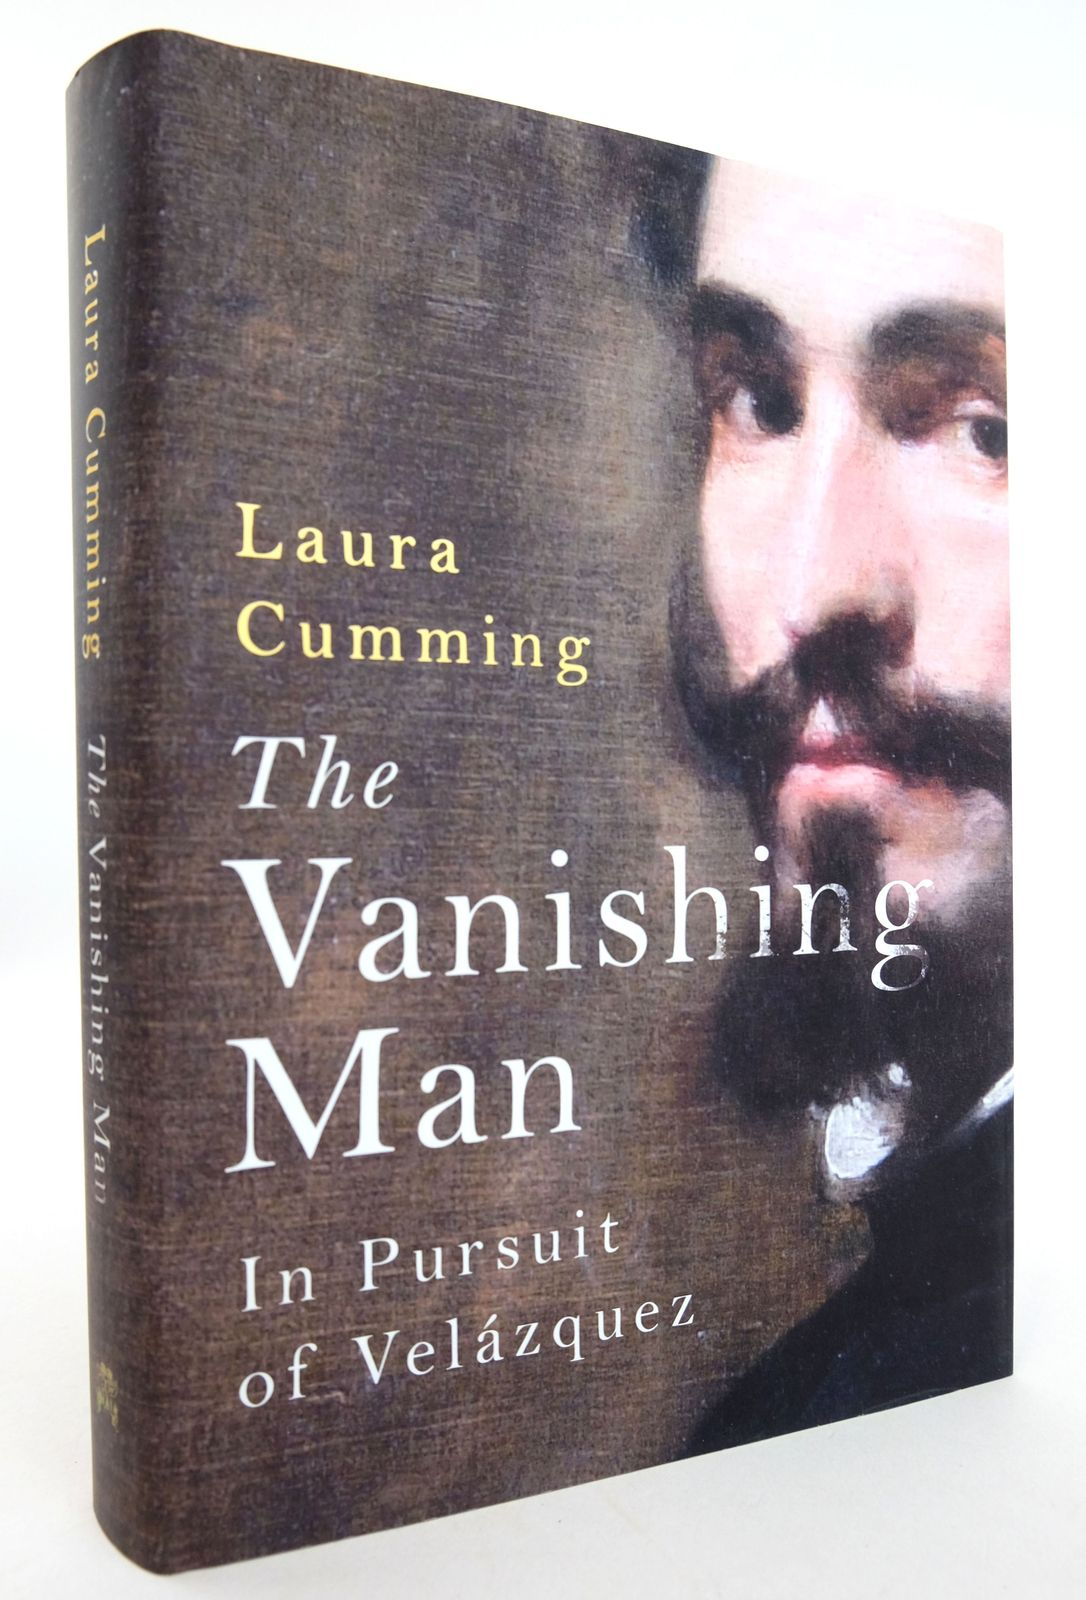 Photo of THE VANISHING MAN: IN PURSUIT OF VELAZQUEZ written by Cumming, Laura illustrated by Velazquez, Diego De Silva published by Chatto & Windus (STOCK CODE: 1819122)  for sale by Stella & Rose's Books